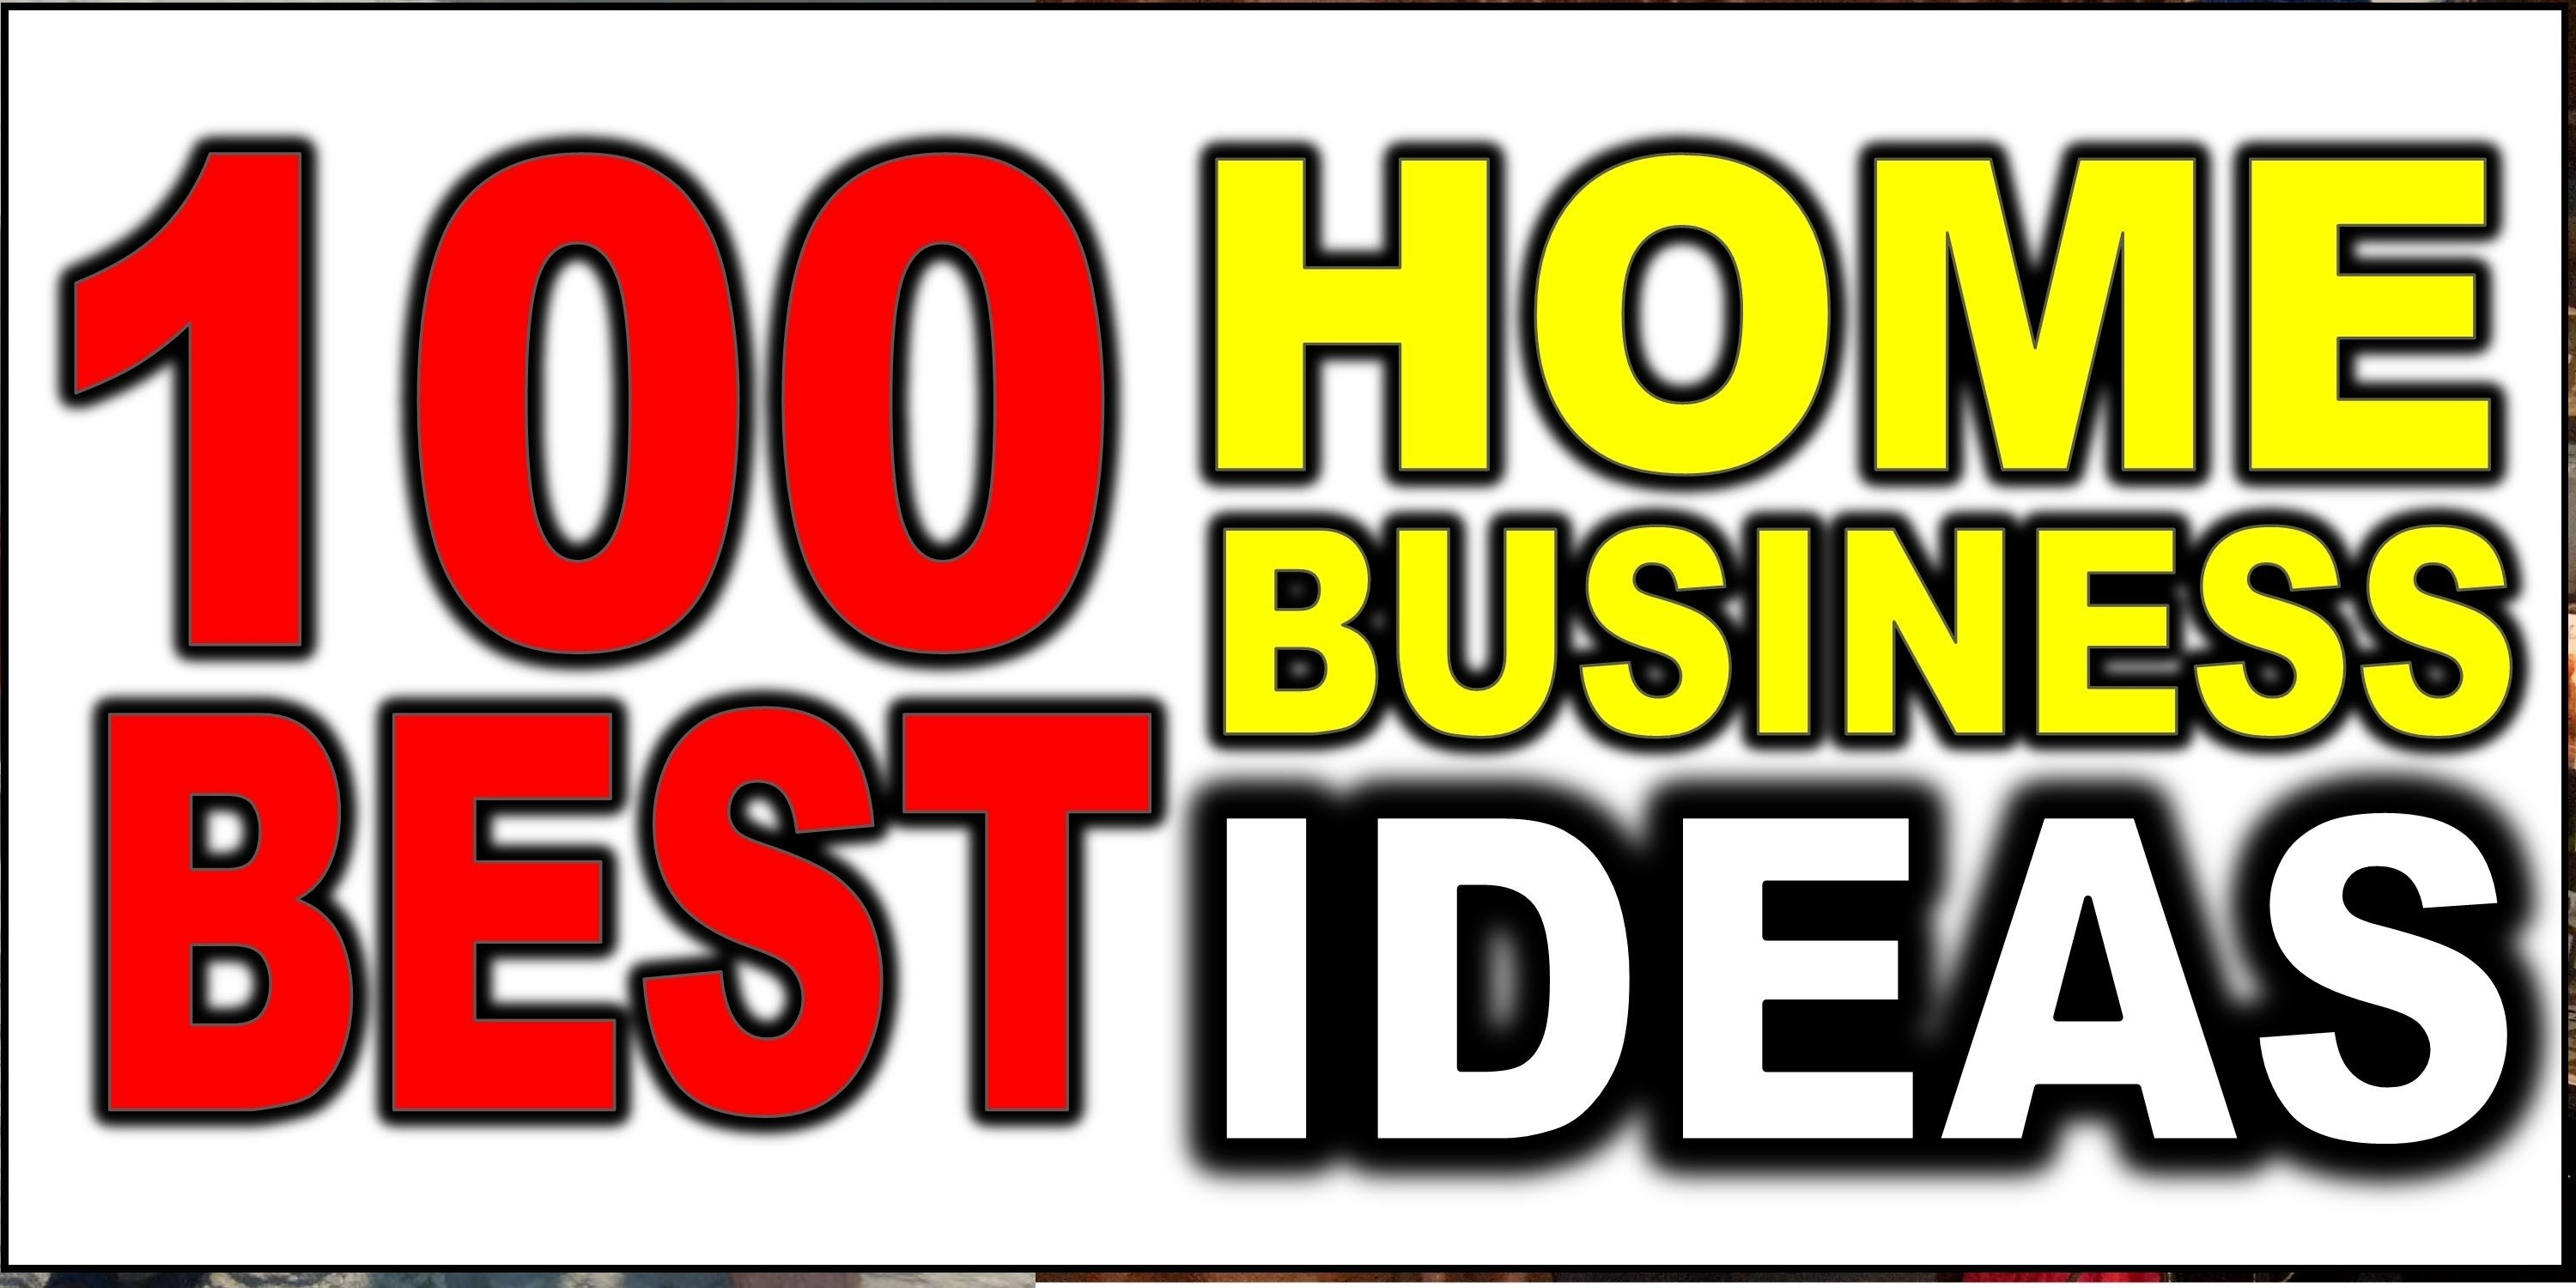 100 best home business ideas - youtube